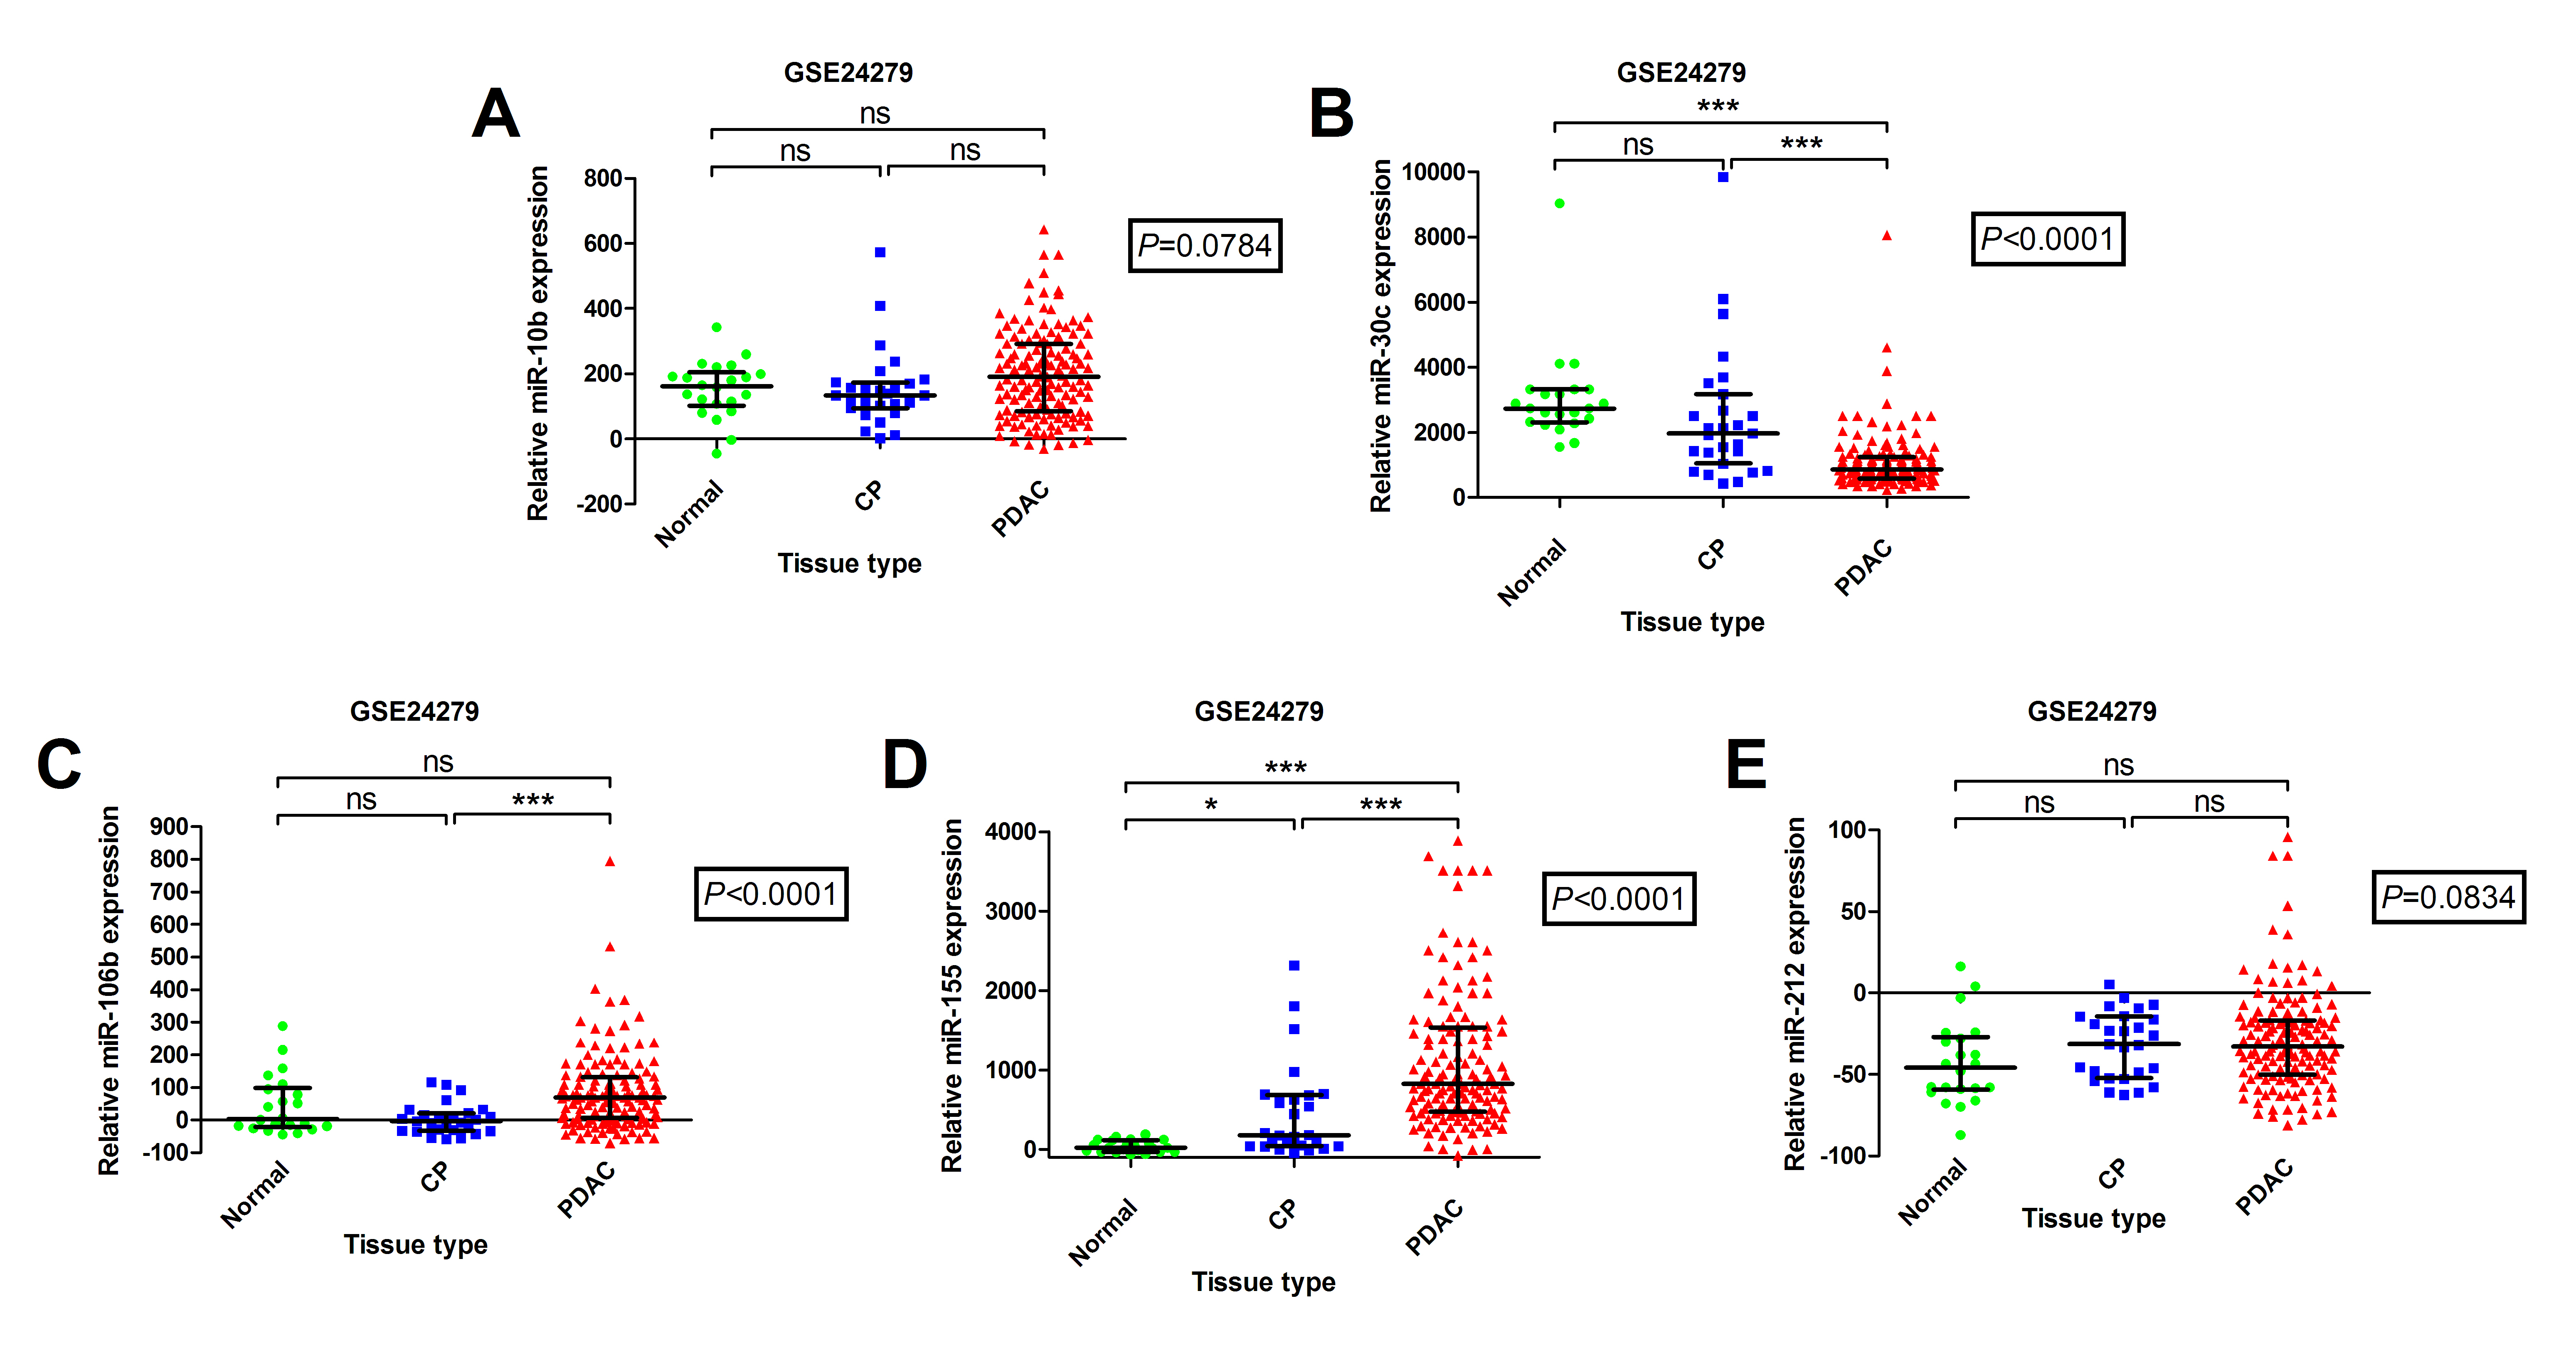 Down-regulated miR-30c and up-regulated miR-155 expression can differentiate PDAC tissues from normal pancreas and chronic pancreatitis